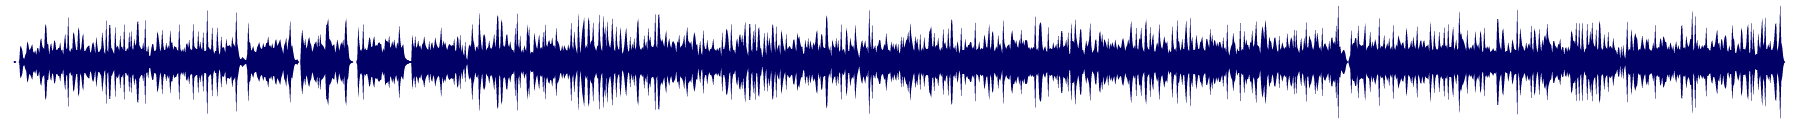 waveform of track #67521